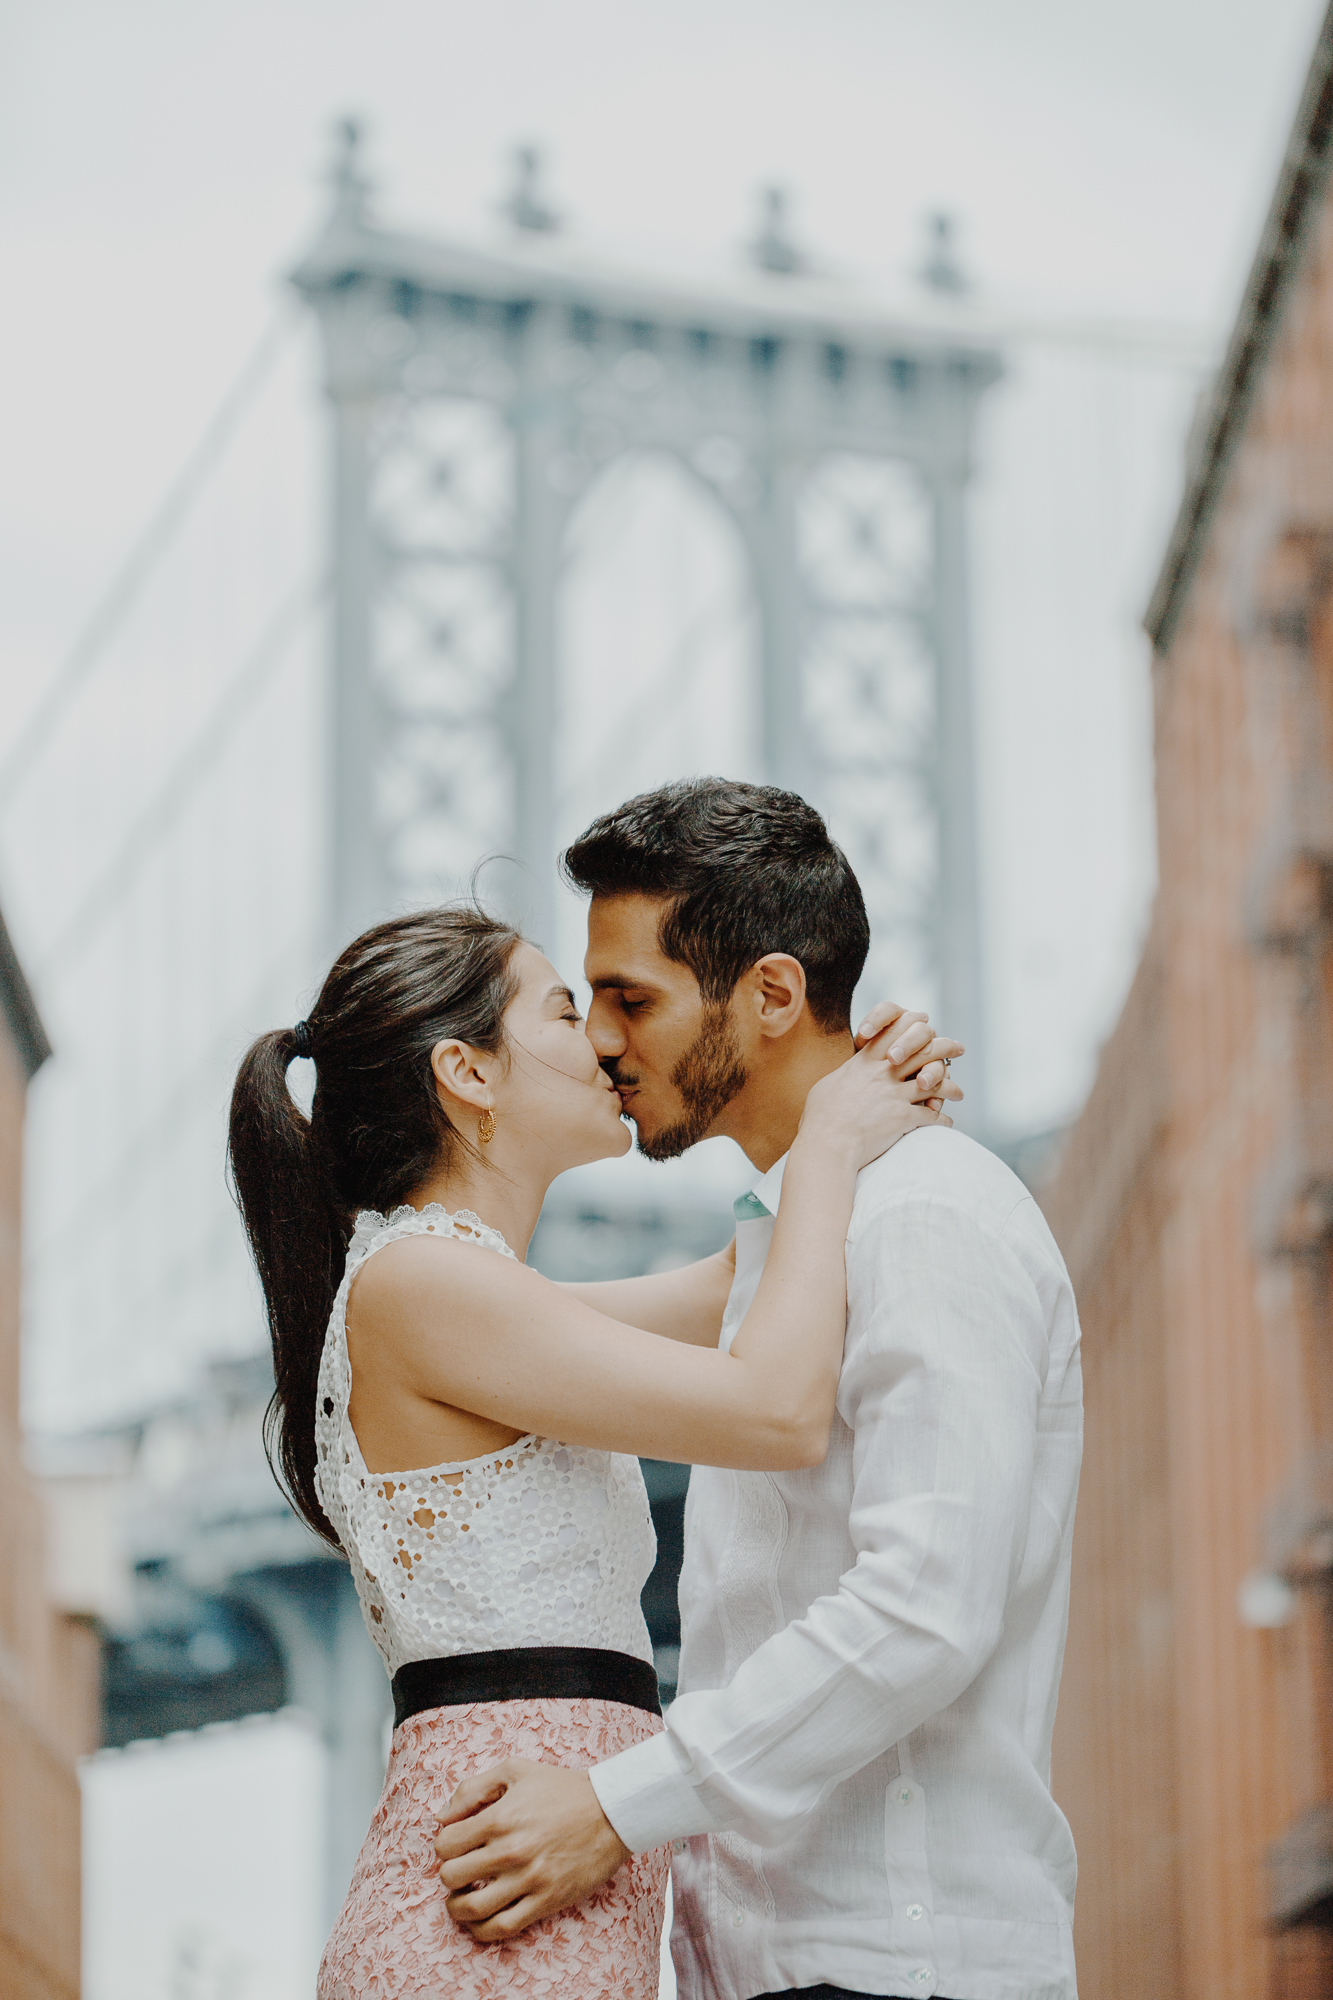 Dumbo Washington Street Engagement Shoot